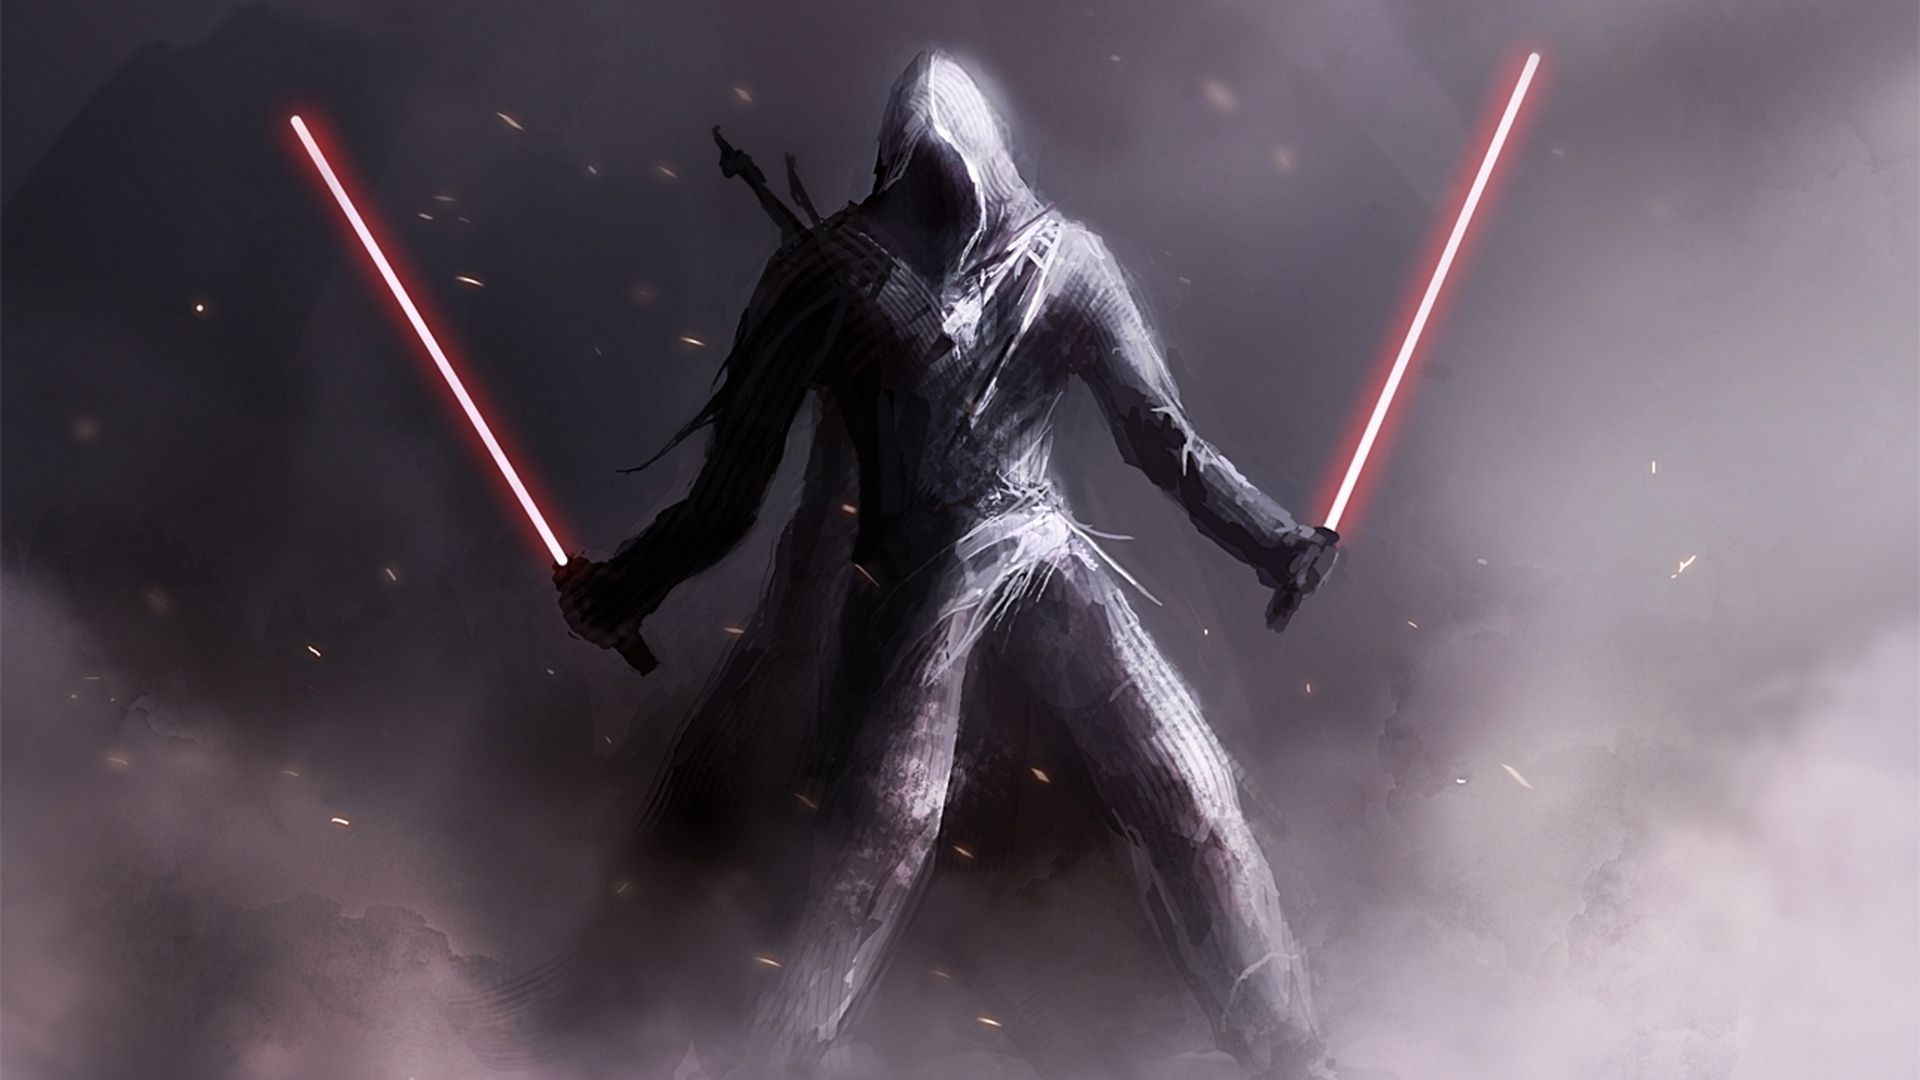 Star Wars Sith Wallpaper Background Is Cool Wallpapers Star Wars Wallpaper Star Wars Sith Star Wars Poster